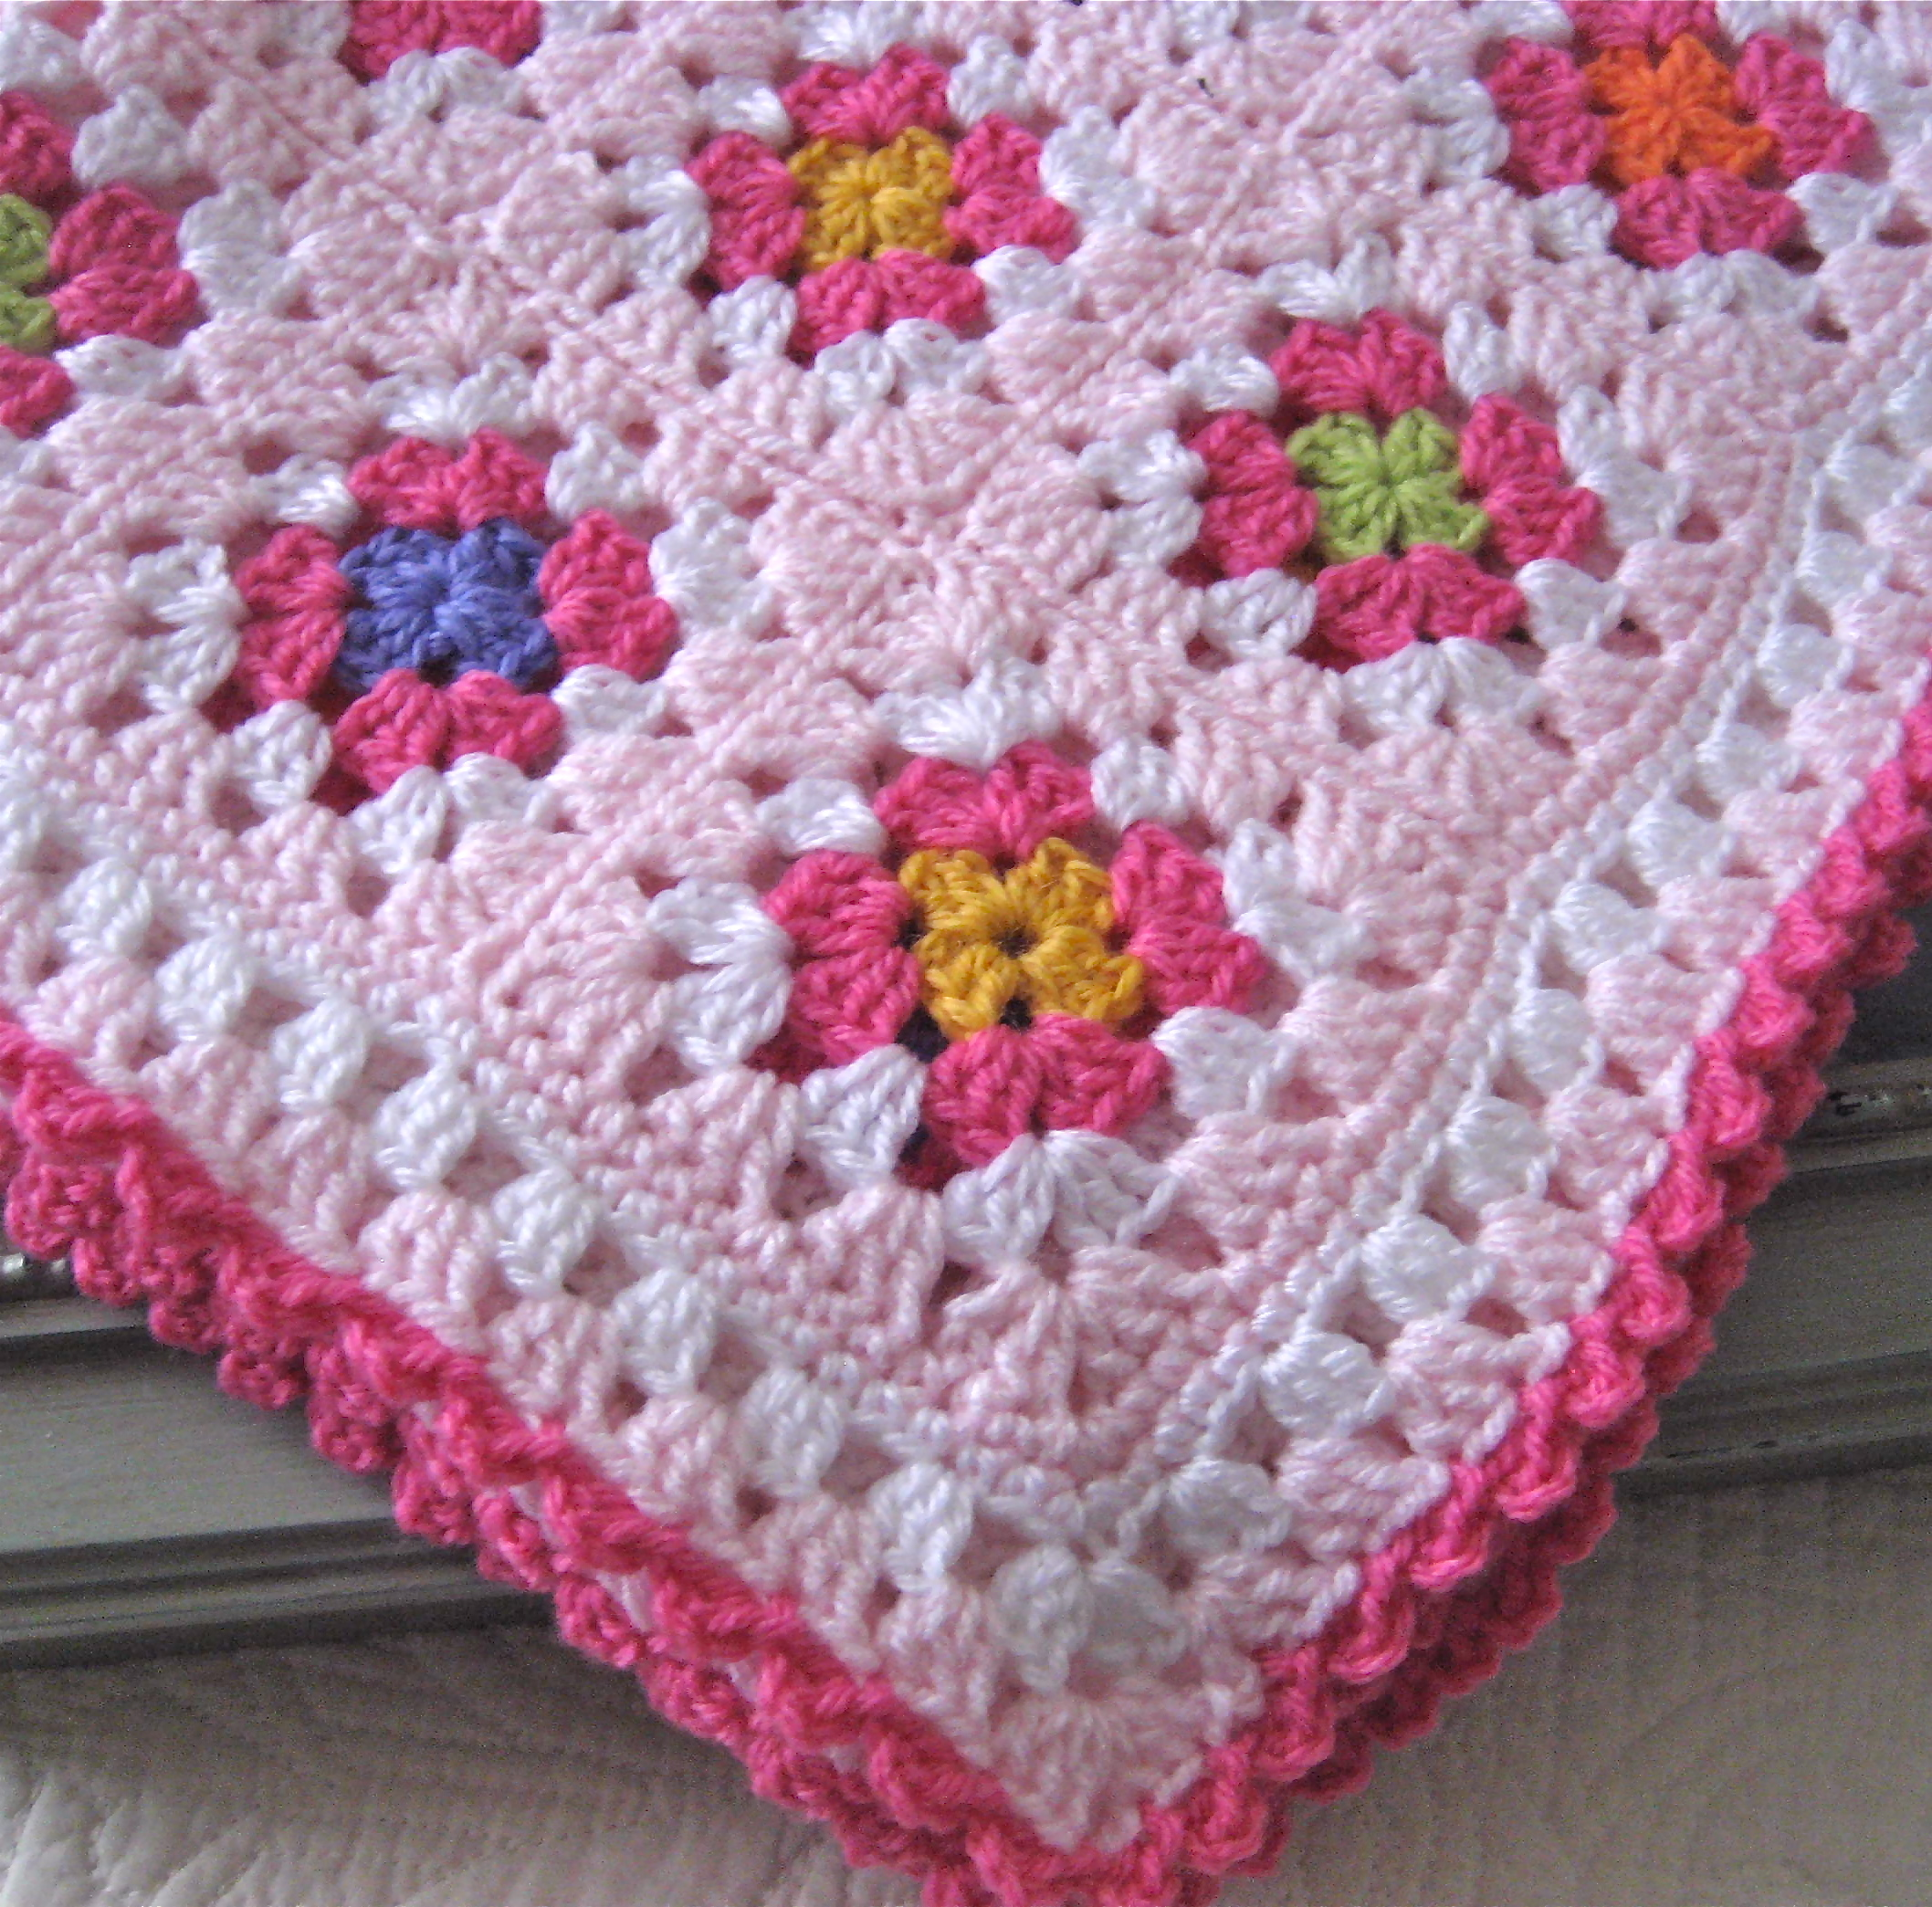 Crochet Patterns Granny Square Baby Blankets : ve decided to attack my enormous stash and turn some of that yarn ...